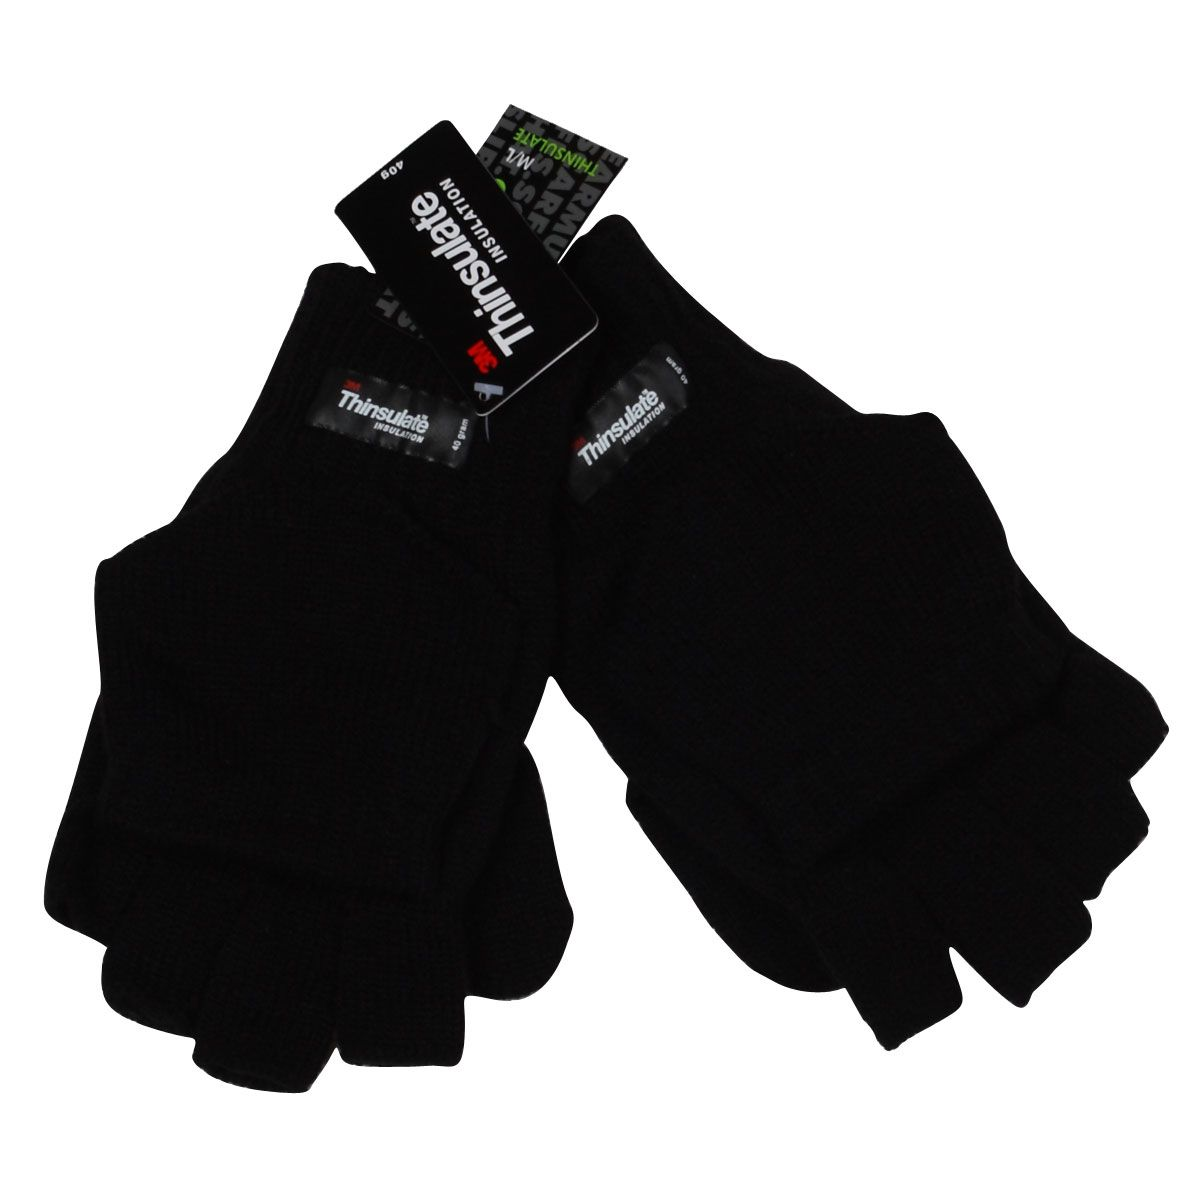 Fingerless gloves thinsulate - Image Is Loading Octave Mens Black Warm Thinsulate Fingerless Gloves With